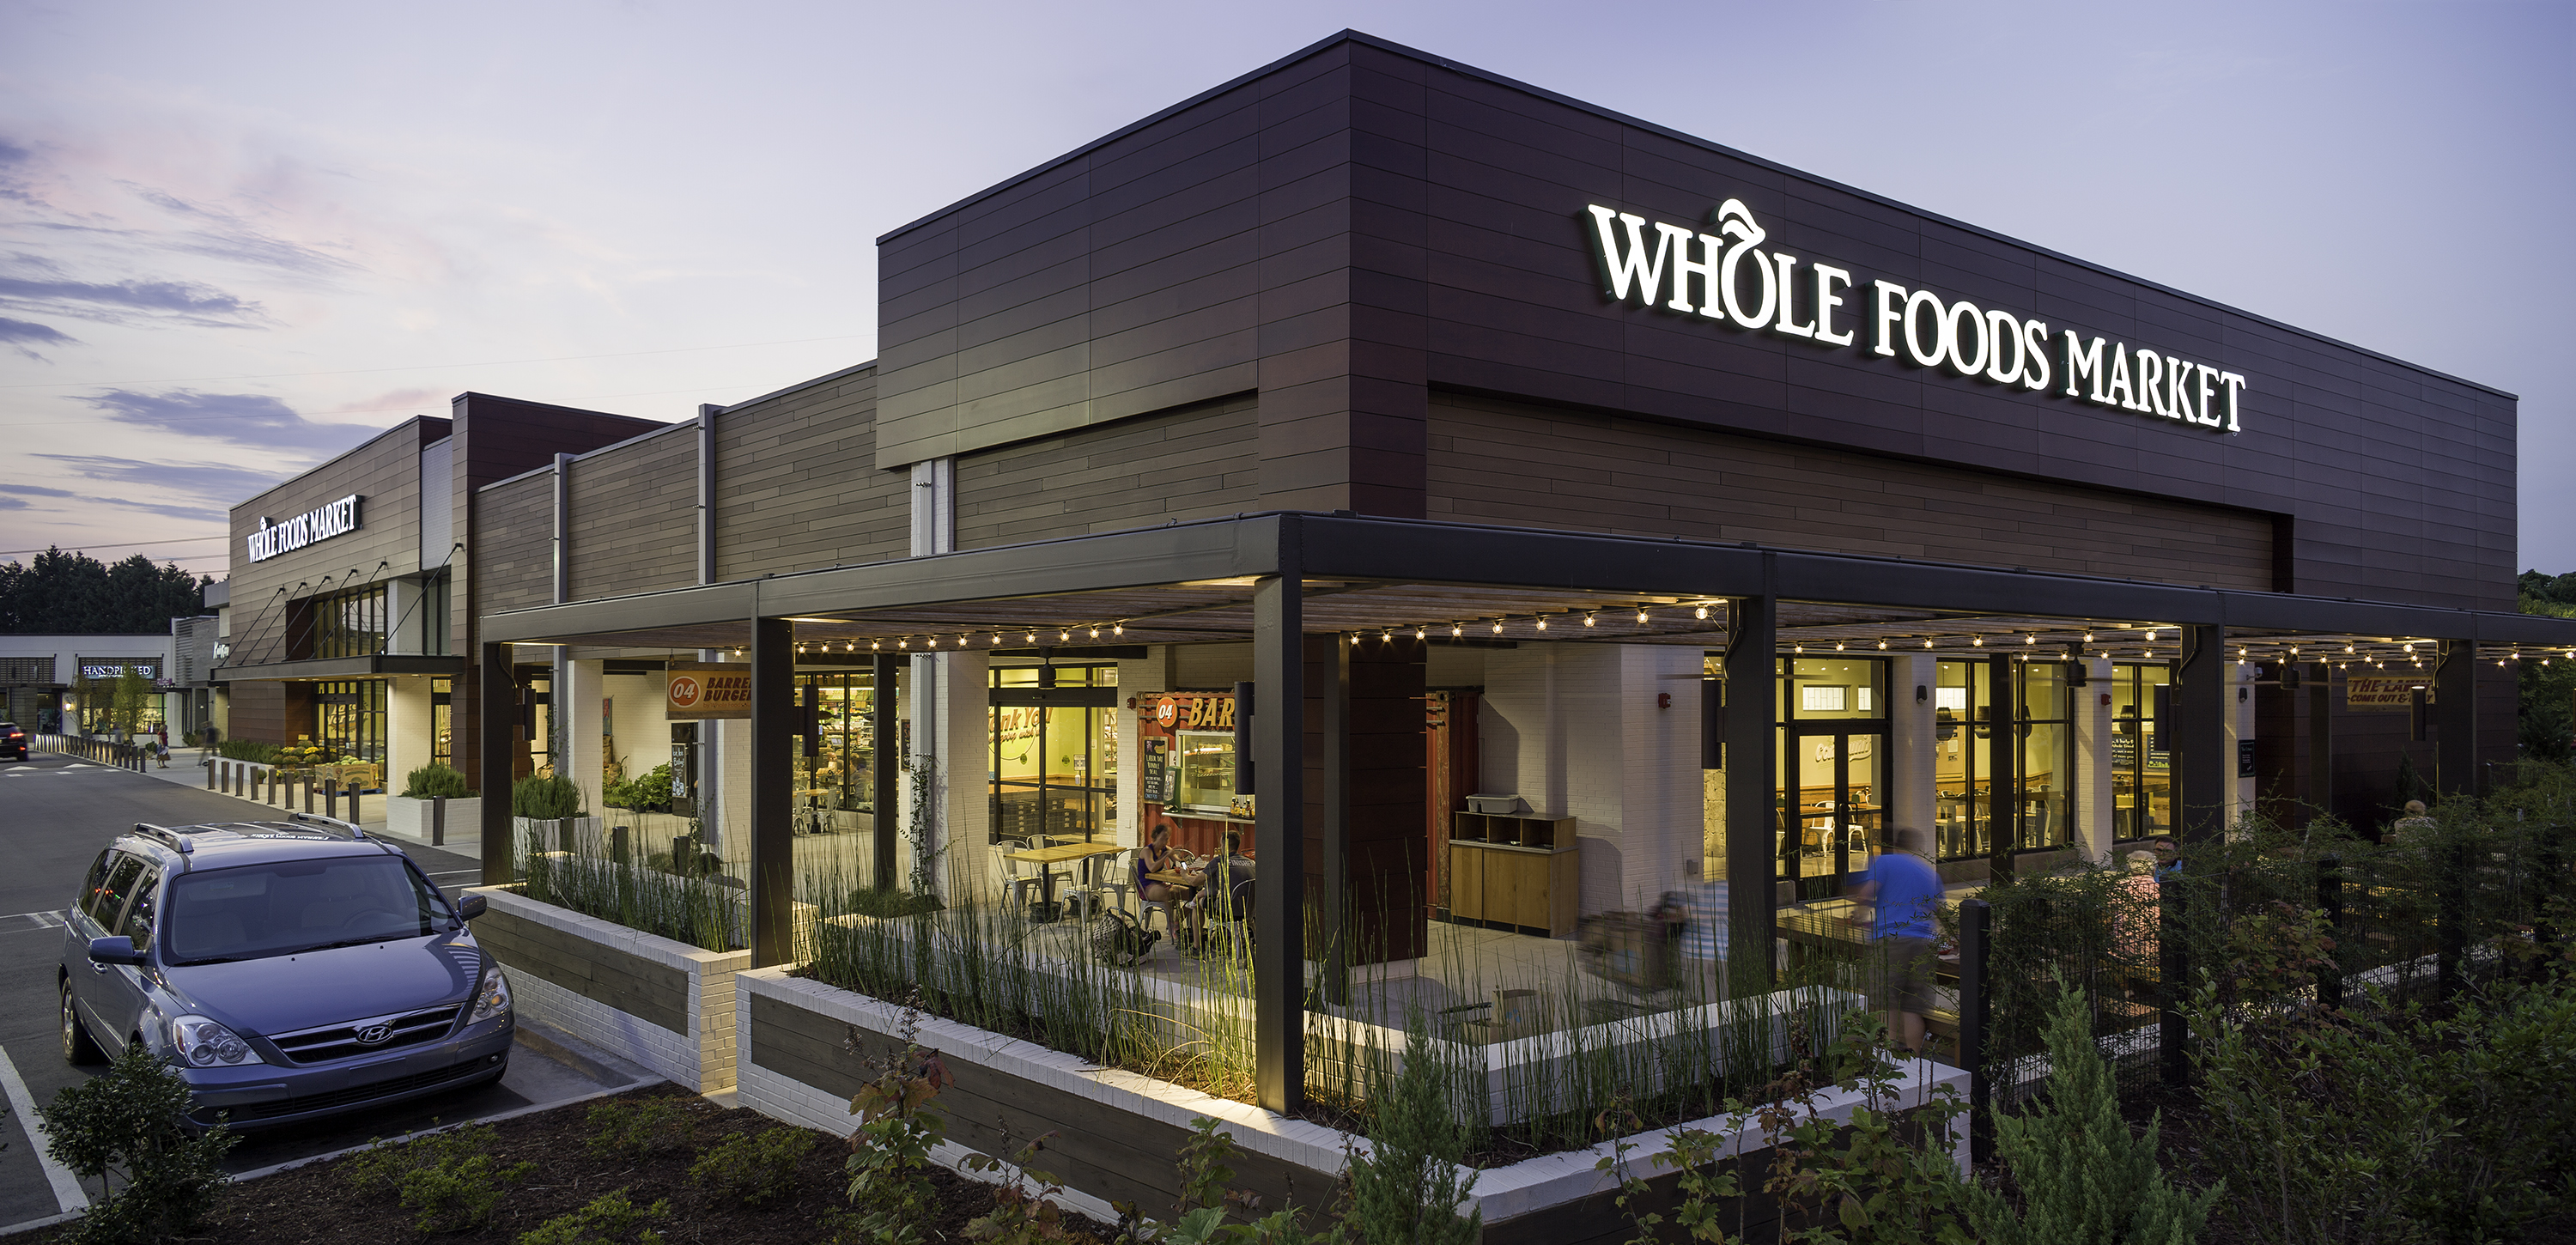 NorthcrossCommons Whole Foods